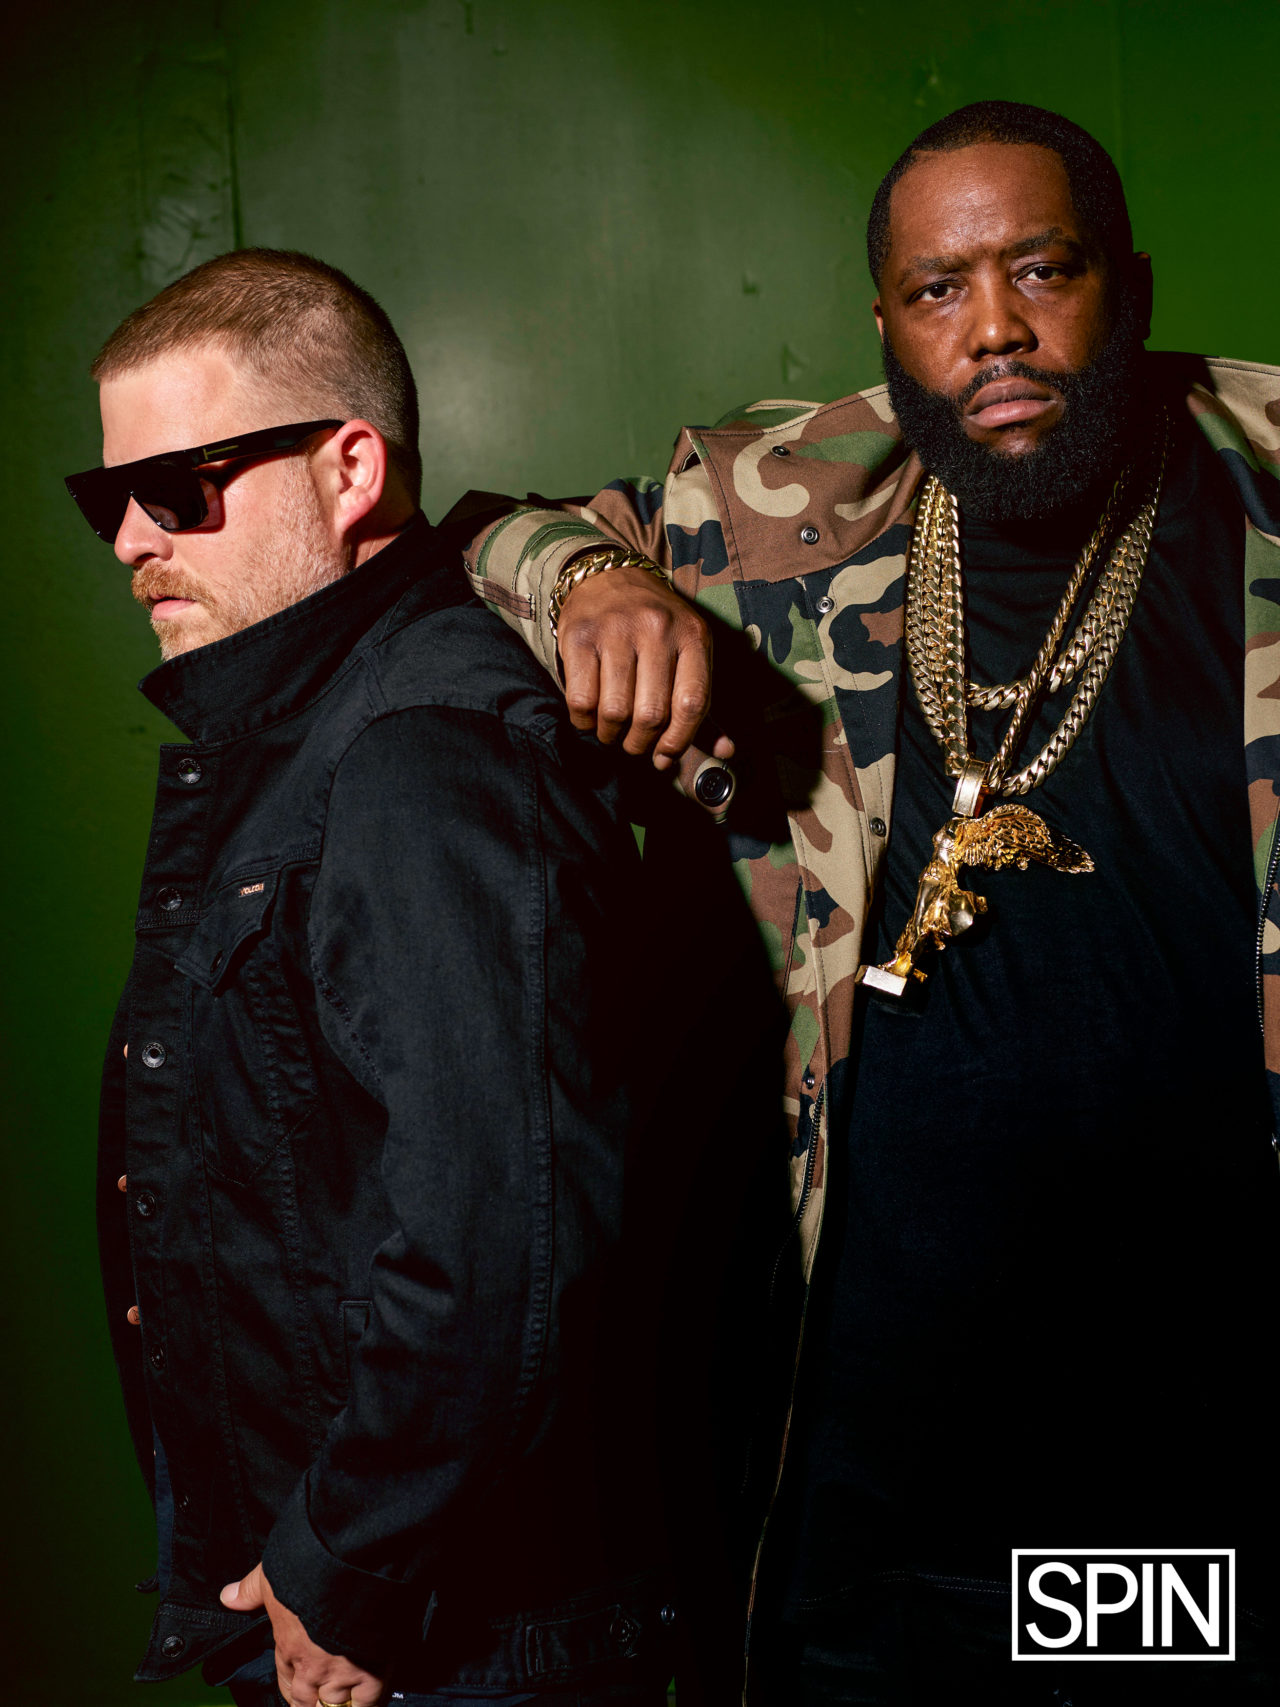 Run the Jewels Artist of the Year 2020